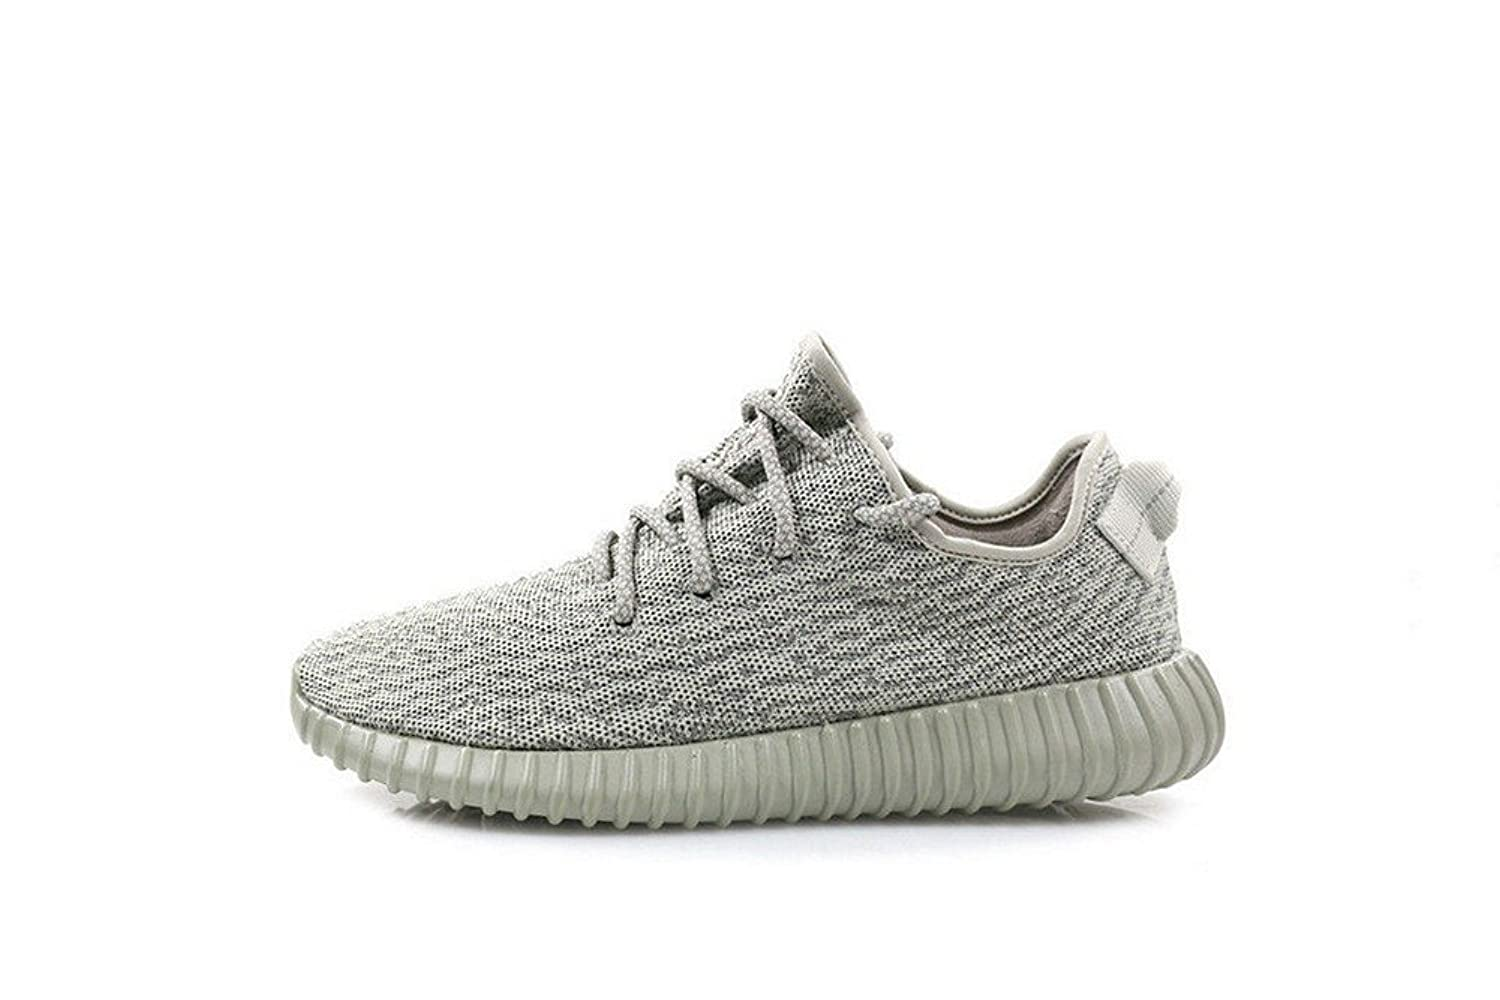 Adidas Yeezy Boost Kanye West Womens Shoes Authentic Adidas - Best free invoice authentic online sneaker stores